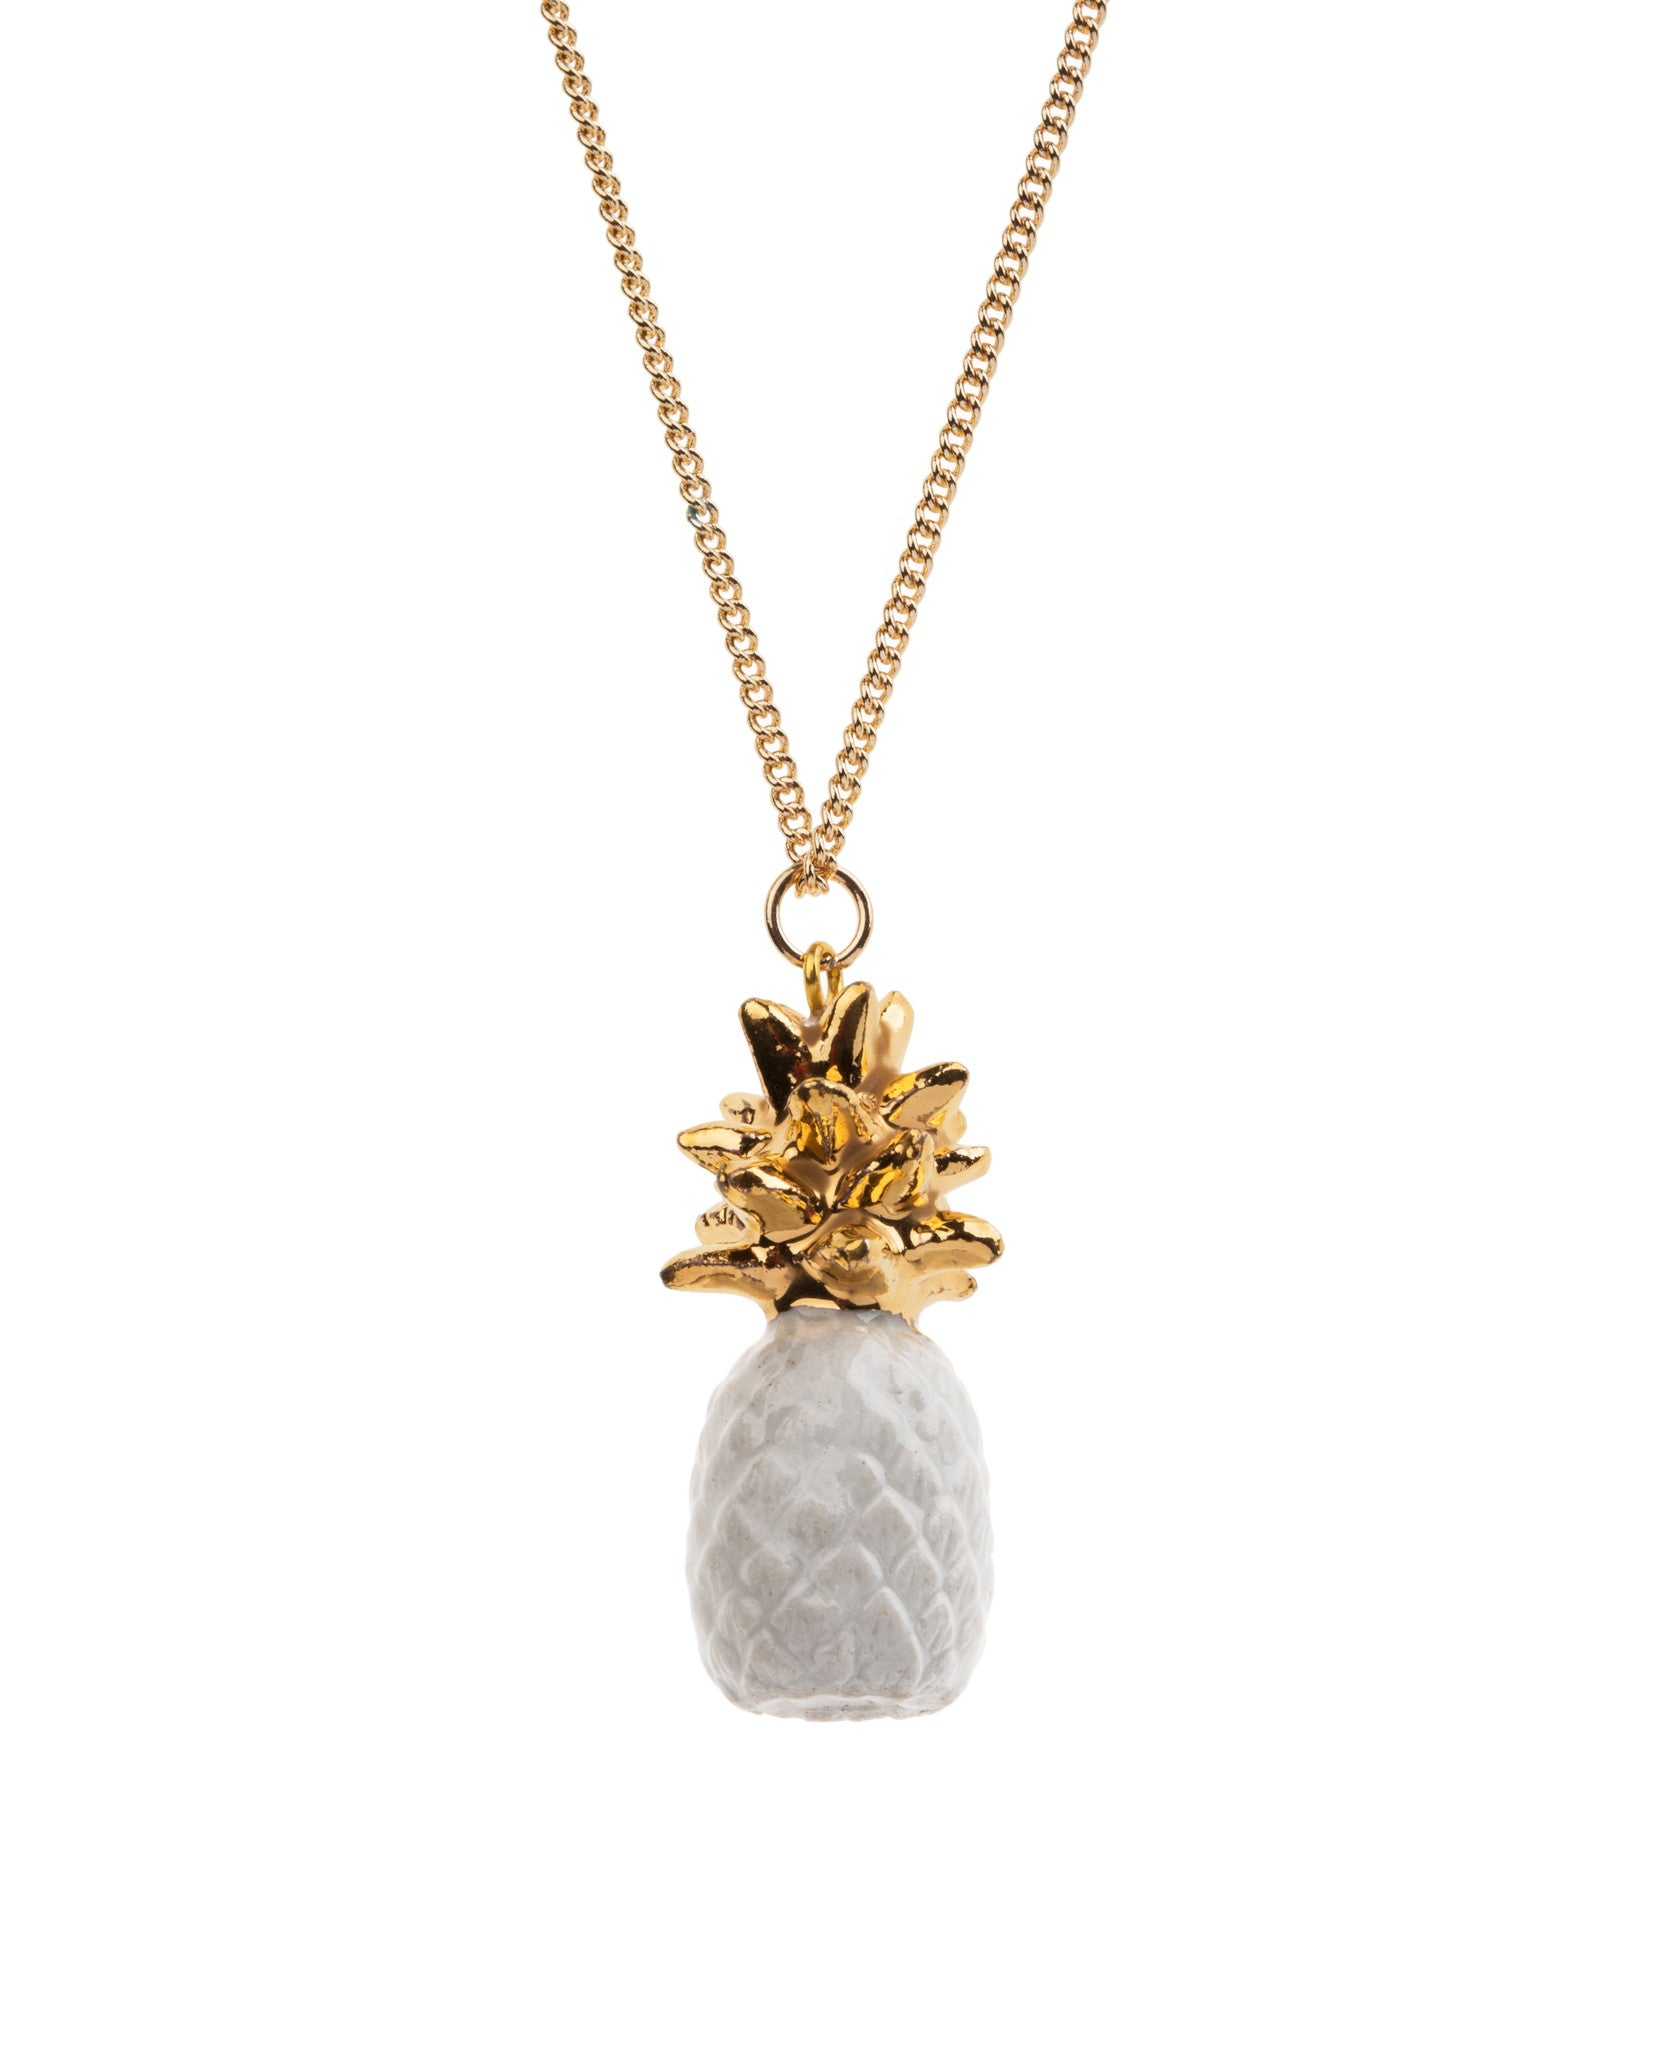 Small White & Gold Pineapple Necklace